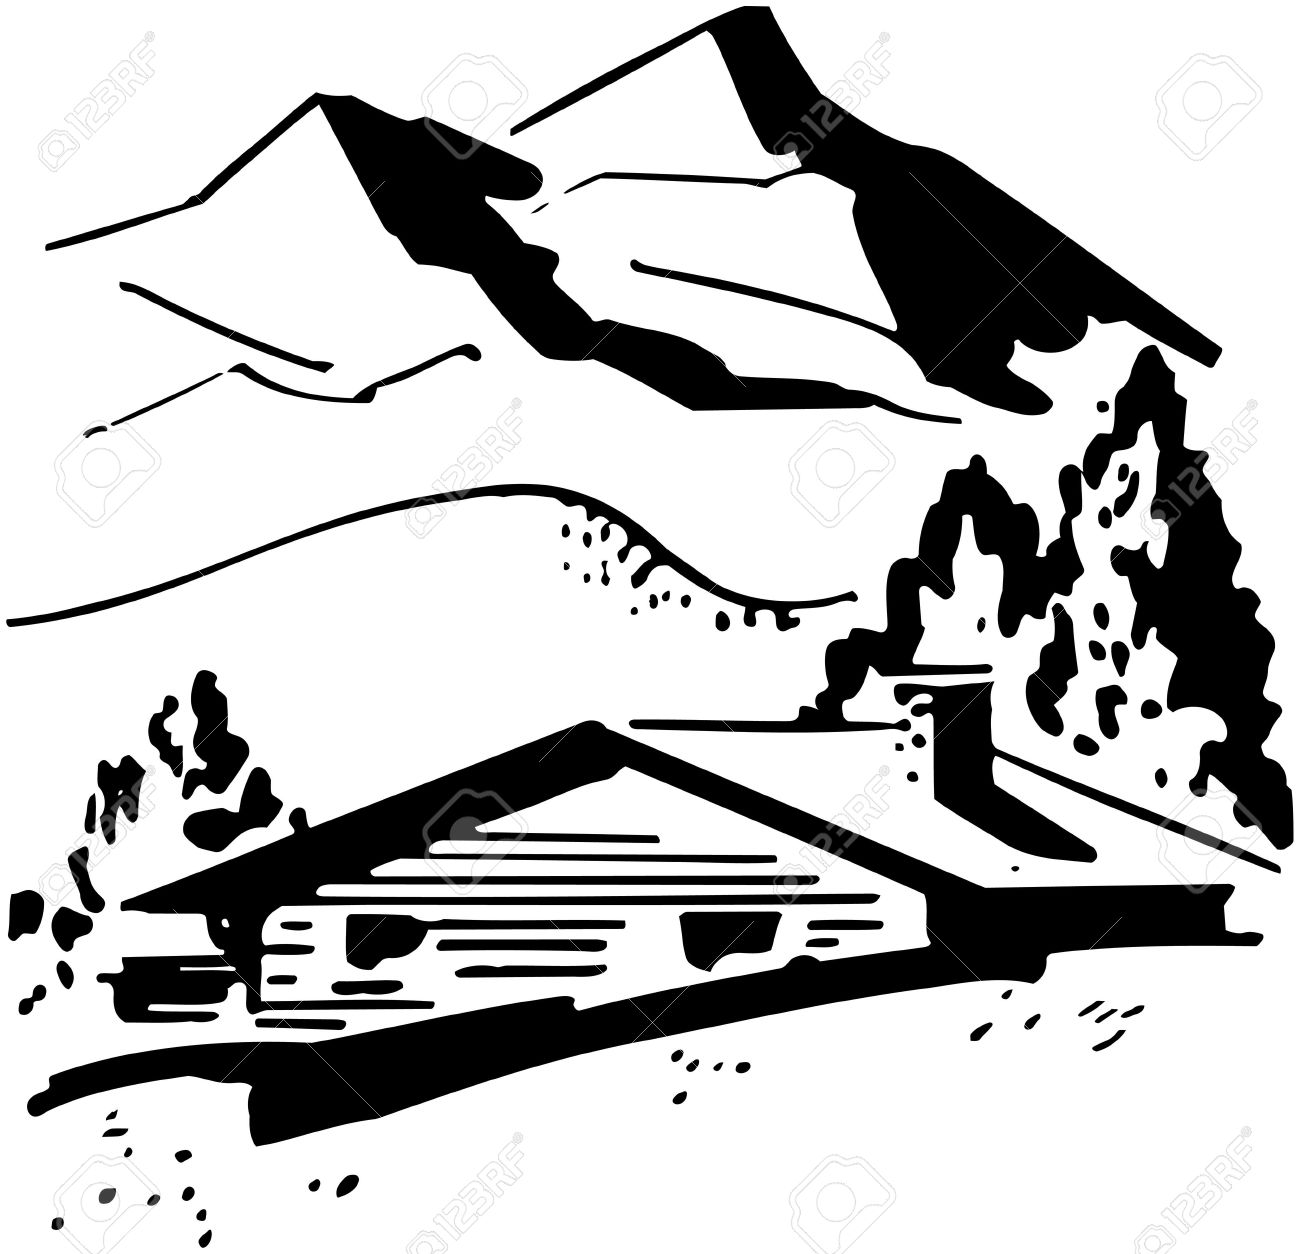 Mountain Cabin Royalty Free Cliparts, Vectors, And Stock.